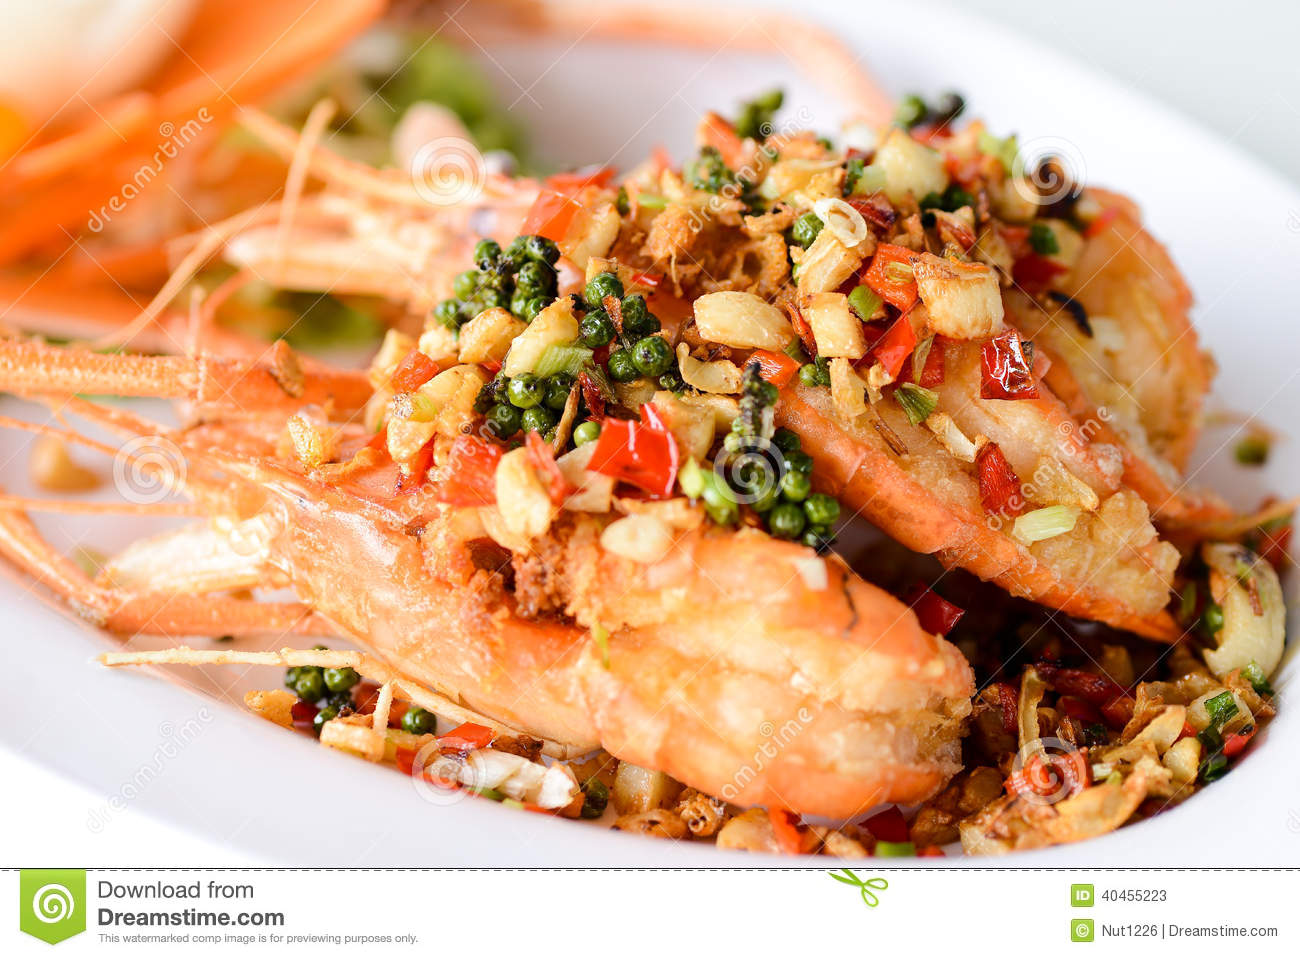 Fried Shrimp With Garlic And Pepper Stock Image - Image ...